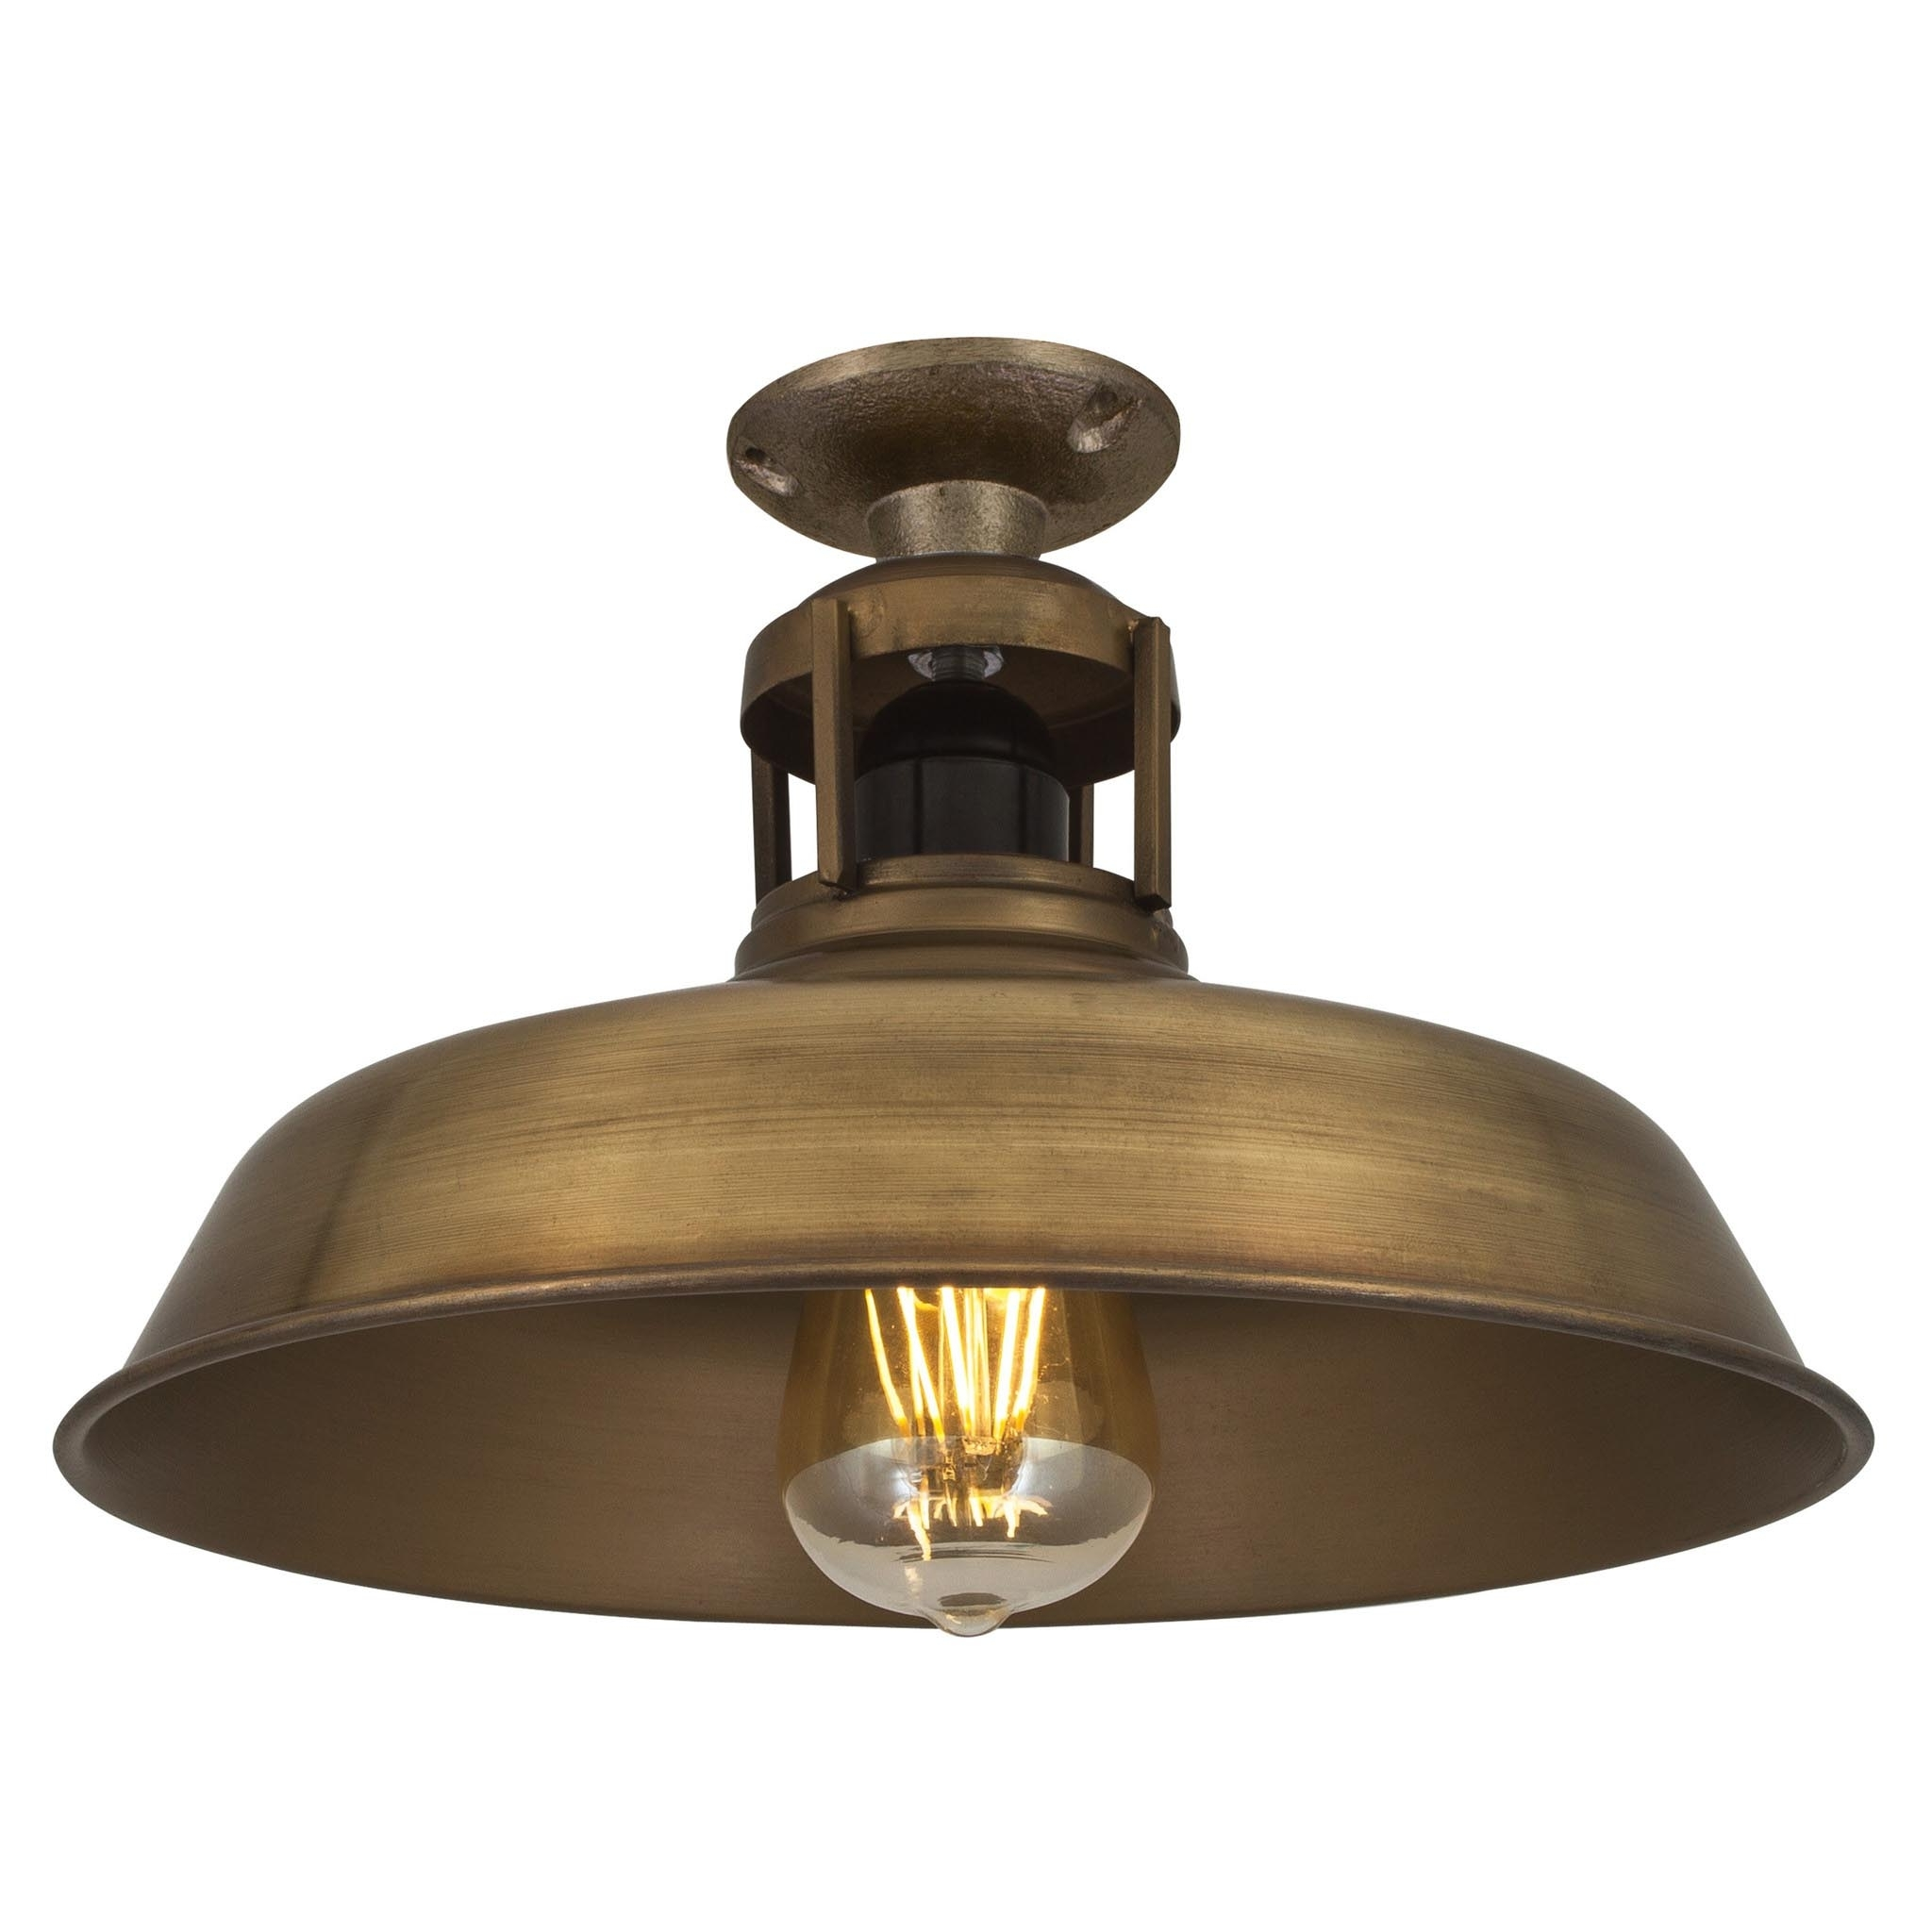 Urban Barn Outdoor Ceiling Light – Ceiling Designs Intended For Fashionable Outdoor Barn Ceiling Lights (View 2 of 20)